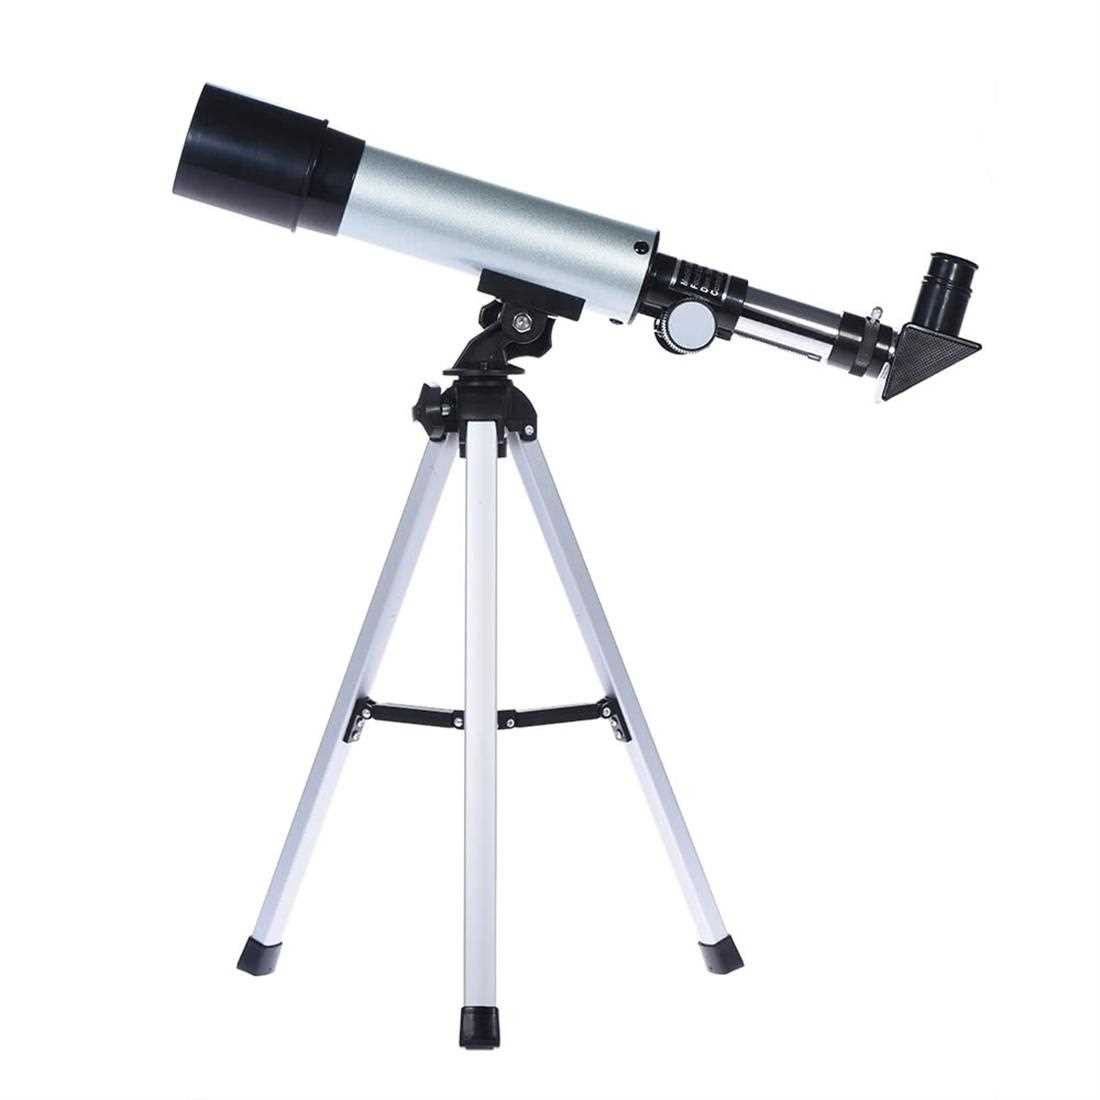 360/50mm Monocular Refracting Space Astronomical Telescope Spotting Scope Built-in Optical Glass with Selectable Eyepie